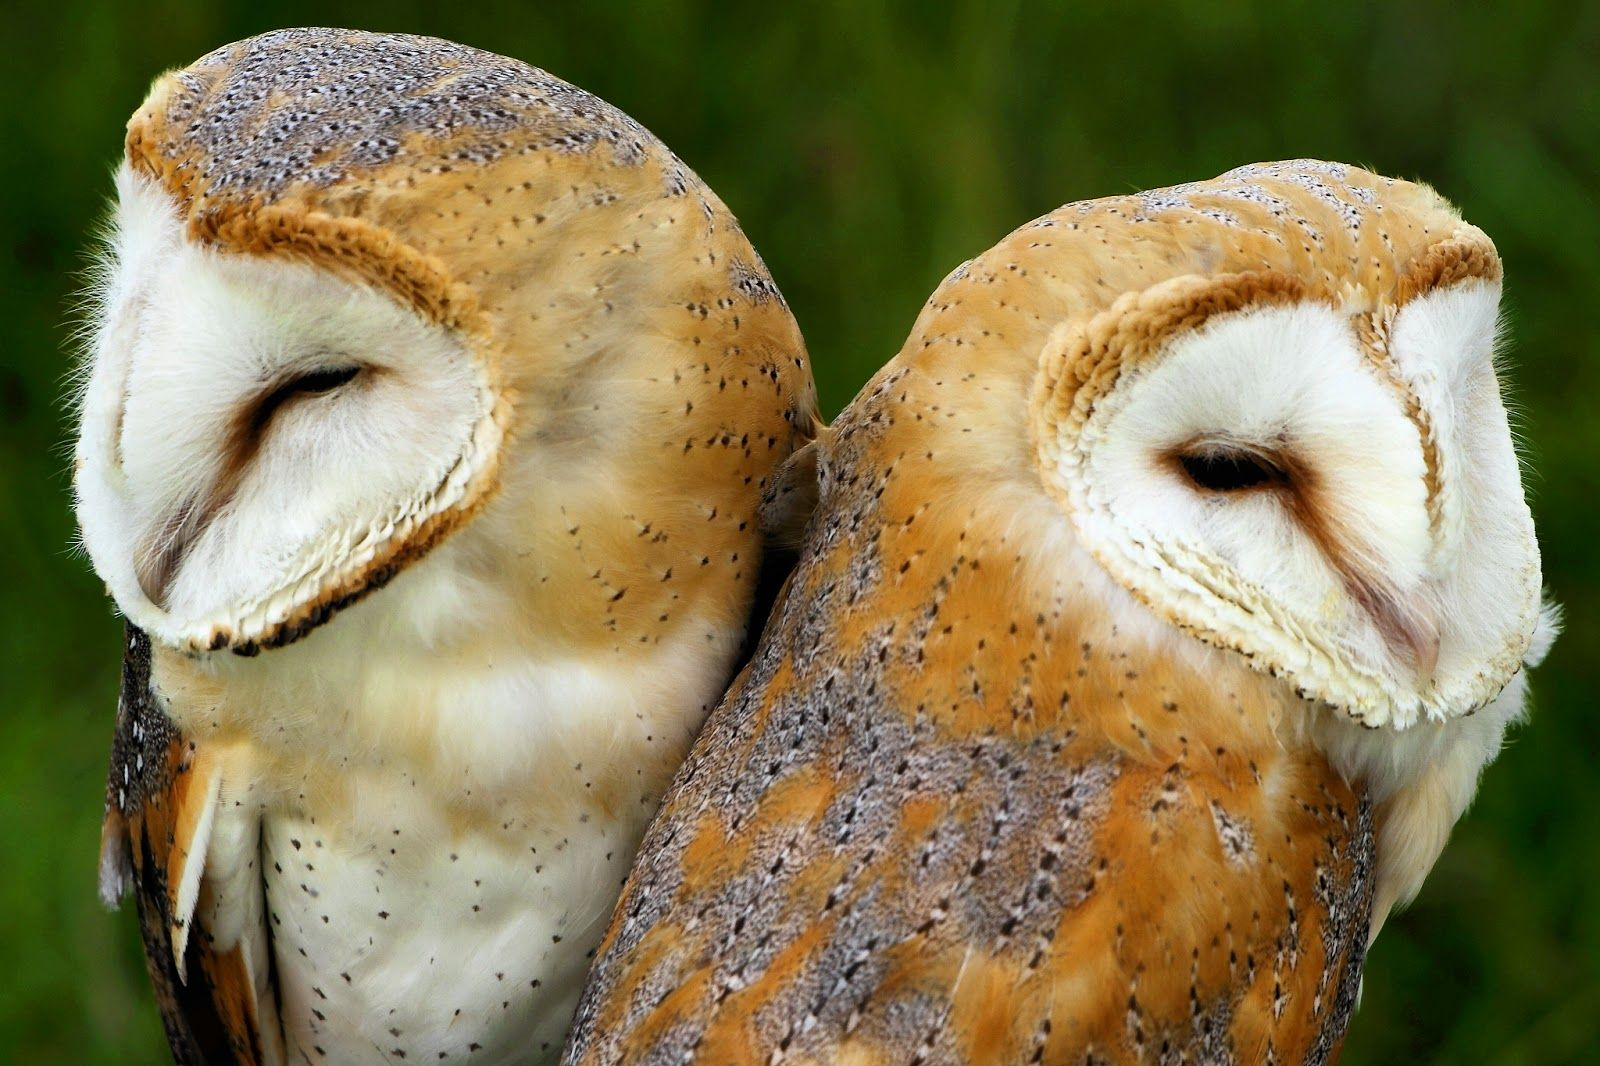 barn owls they mate for life and become very emotionally attached tobarn owls they mate for life and become very emotionally attached to their partner